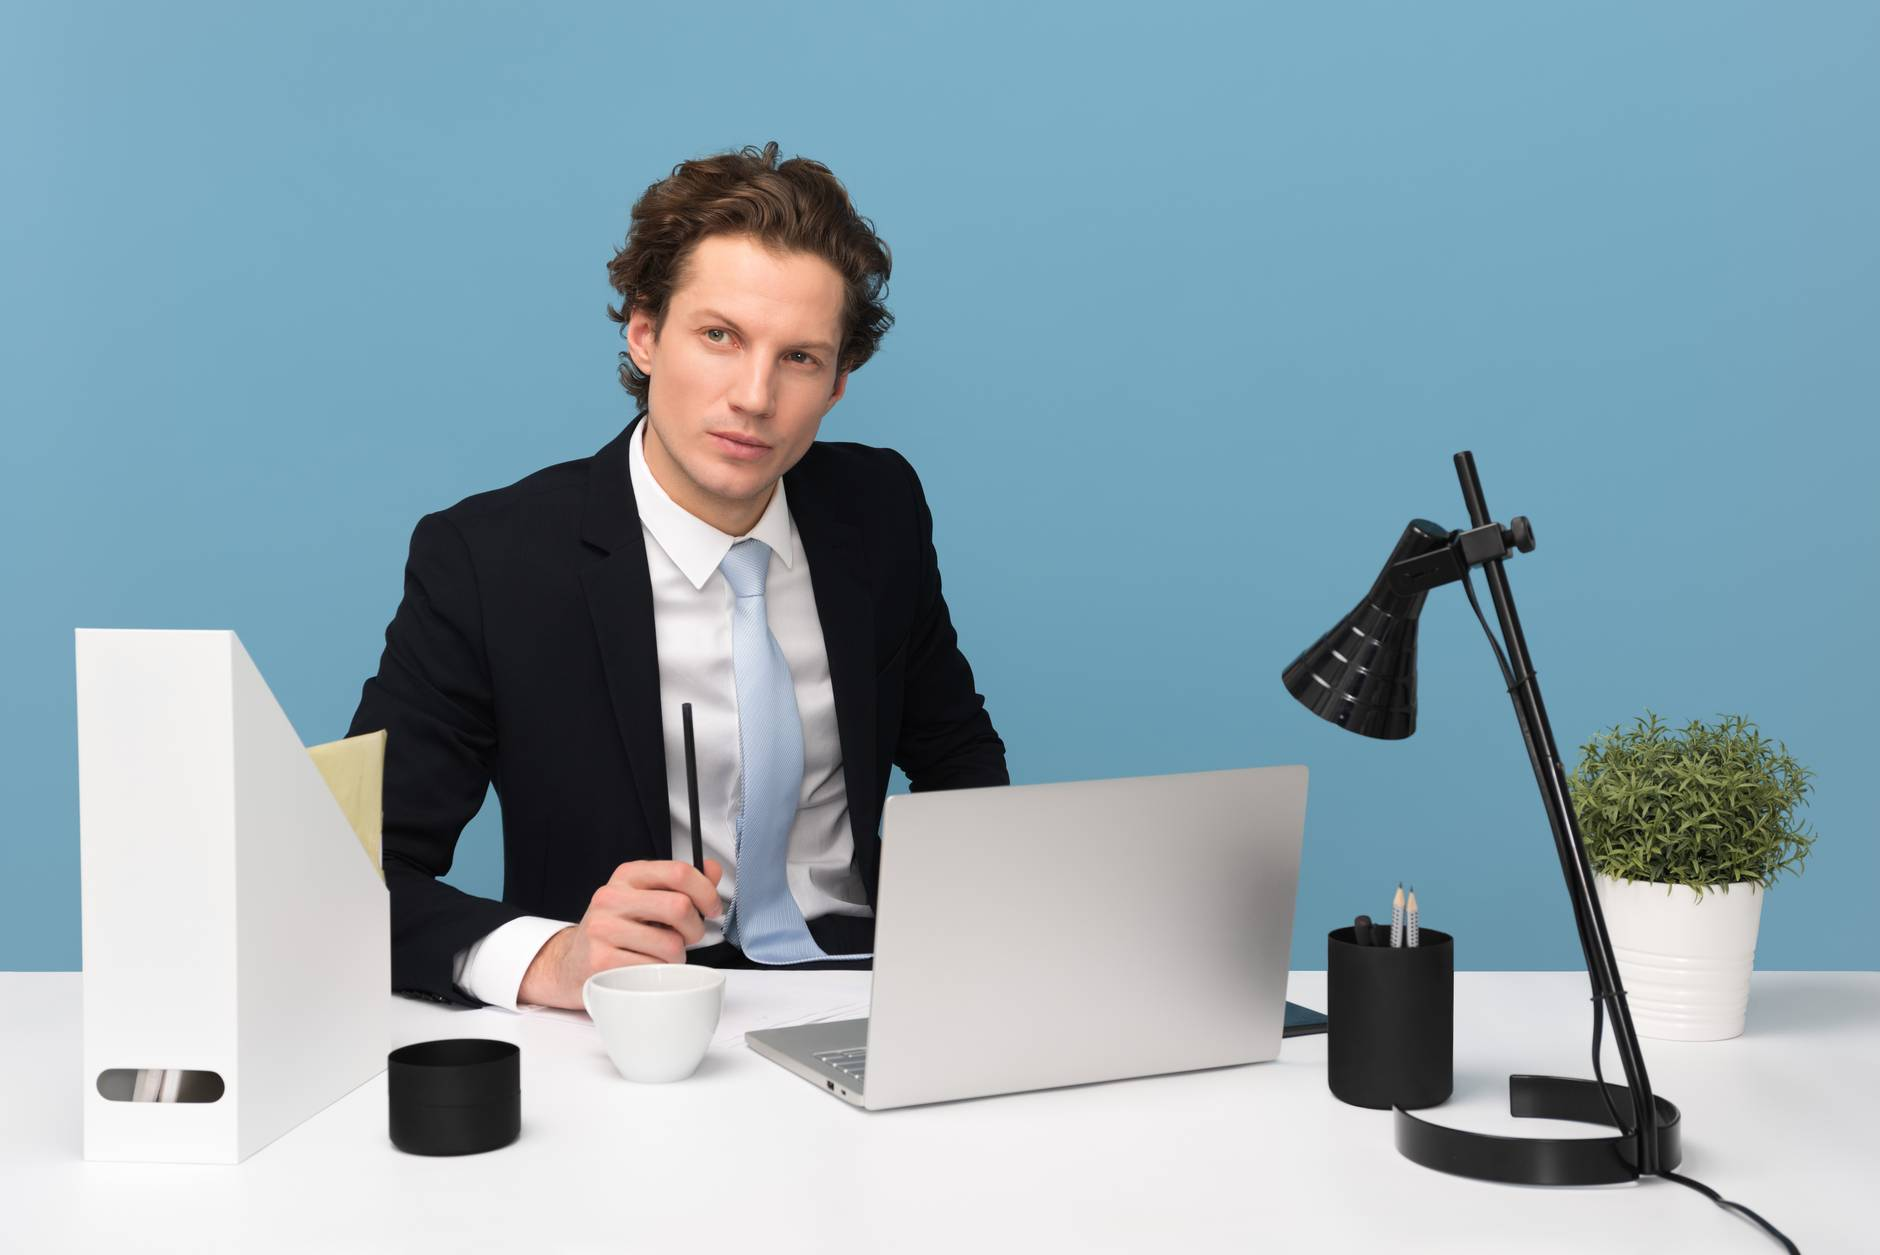 man sitting with laptop computer on desk and lamp.